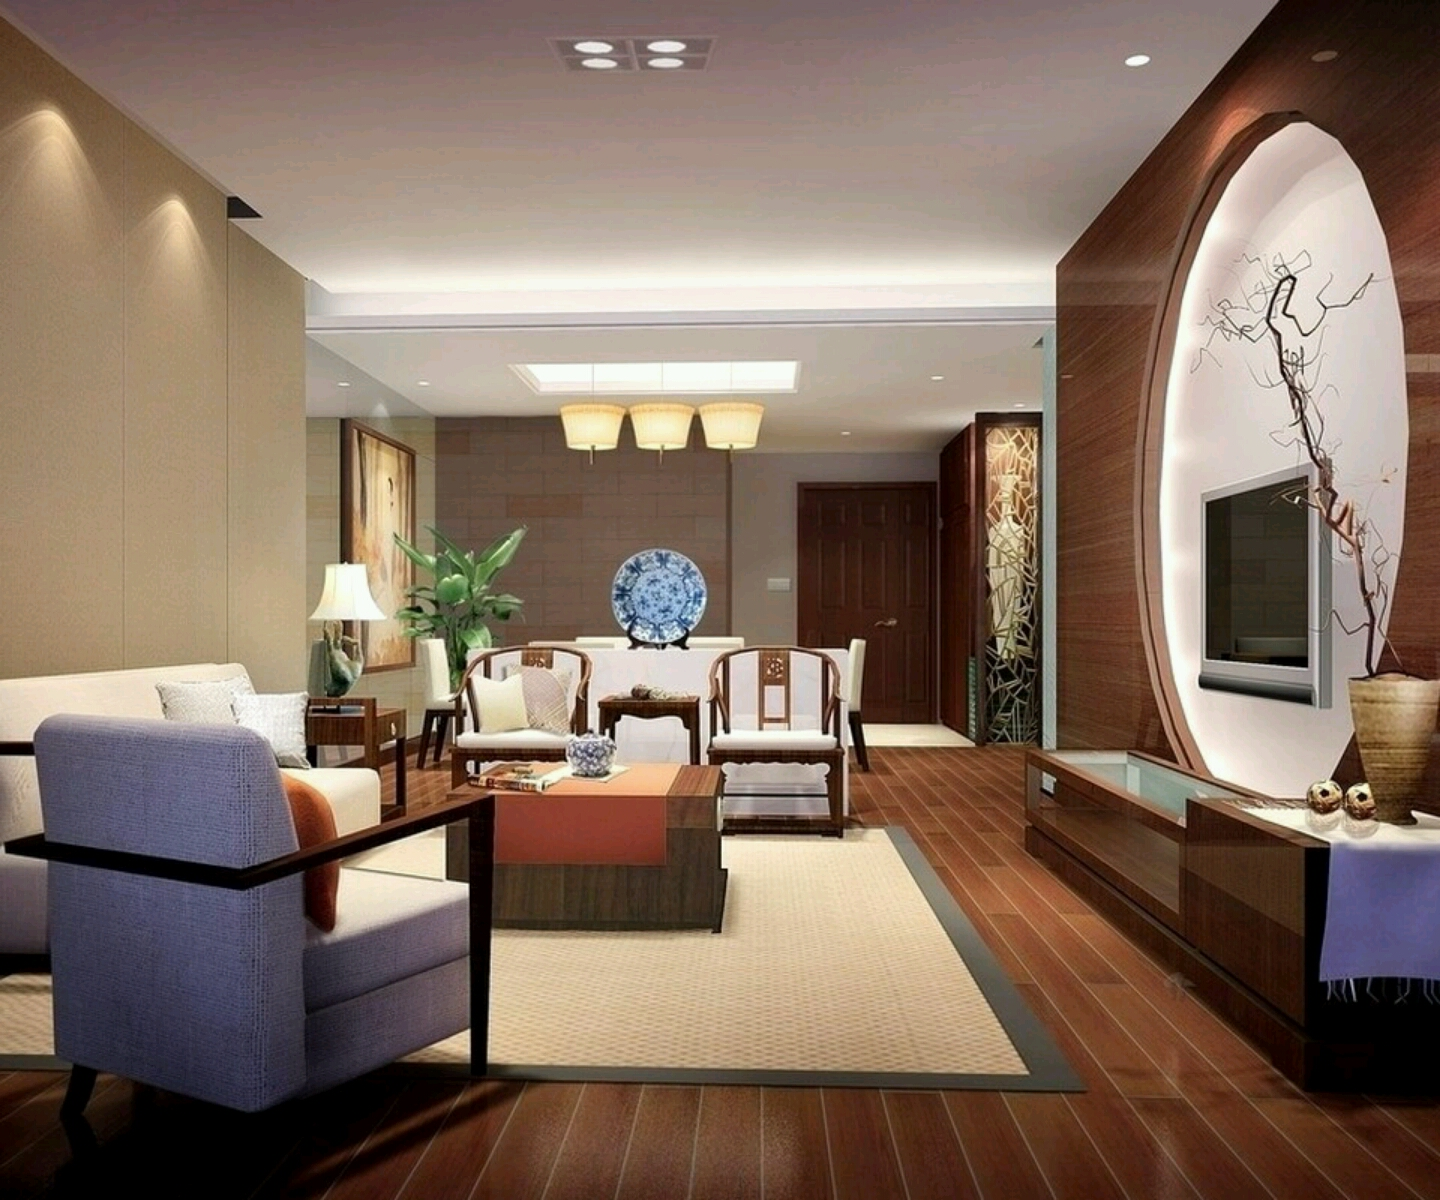 Luxury homes interior decoration living room designs ideas modern home designs - Interior design in living room ...